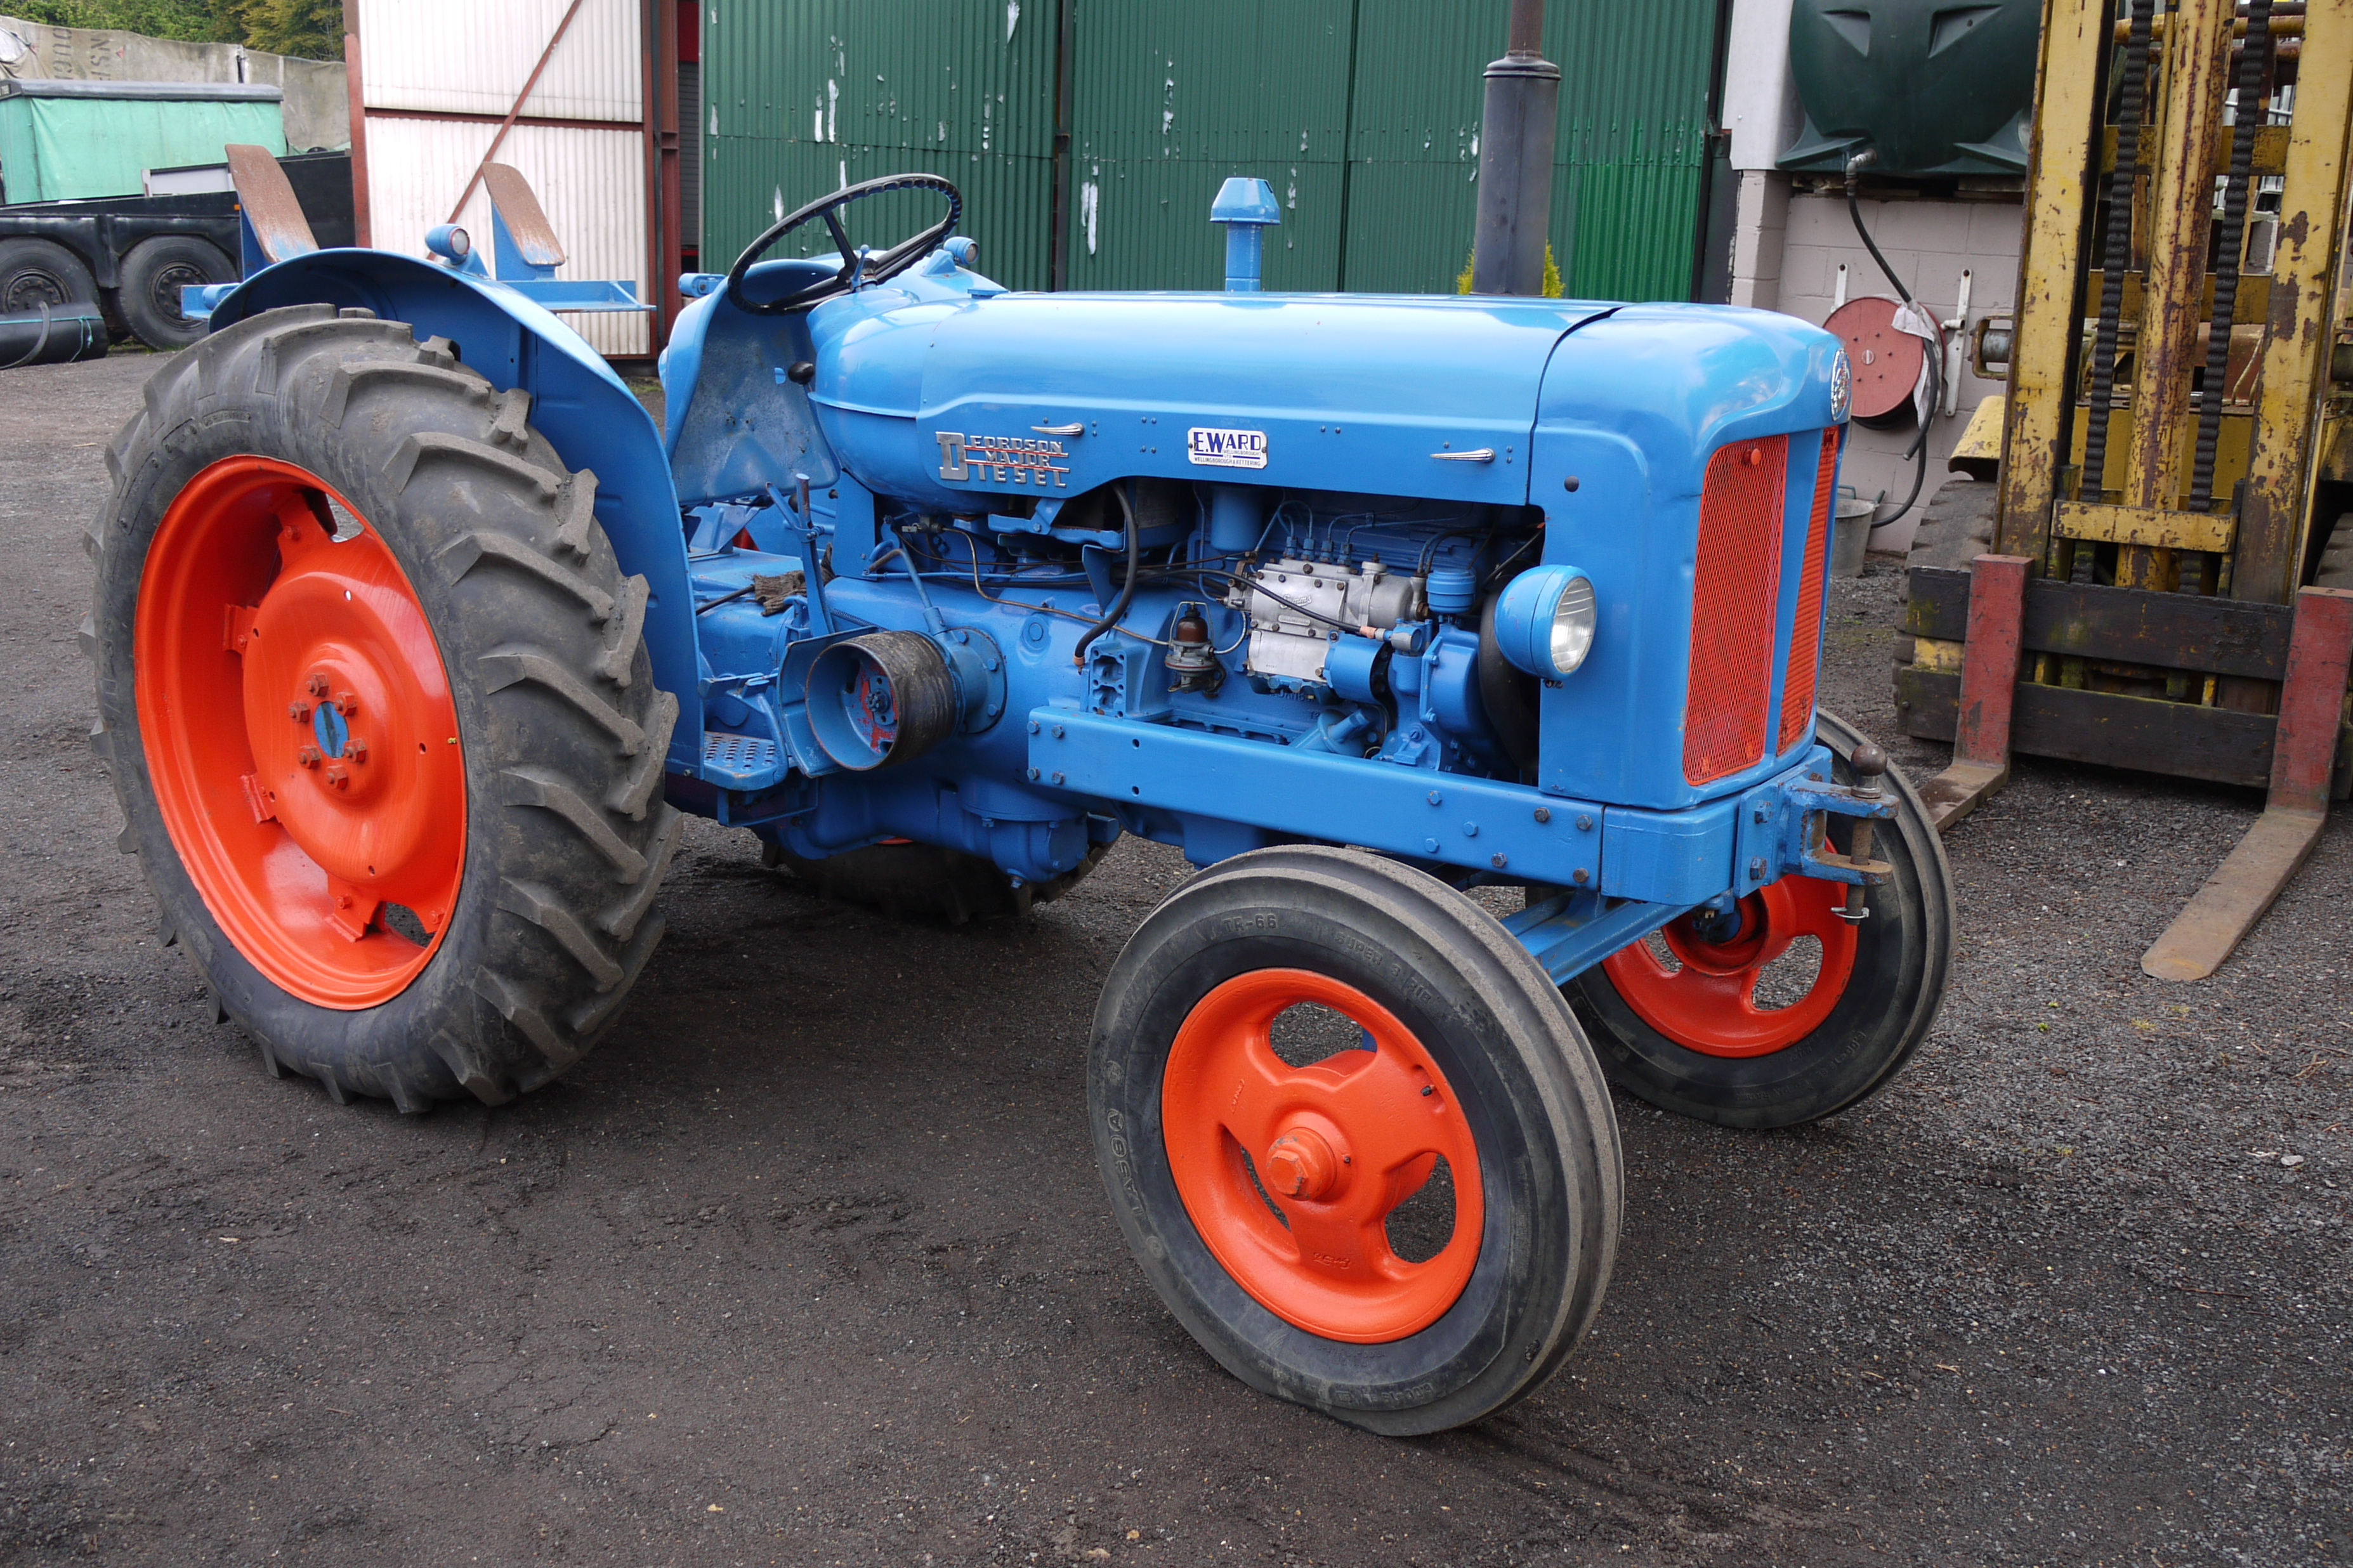 File:Fordson Major - Flickr - mick - Lumix.jpg - Wikimedia Commons Ford